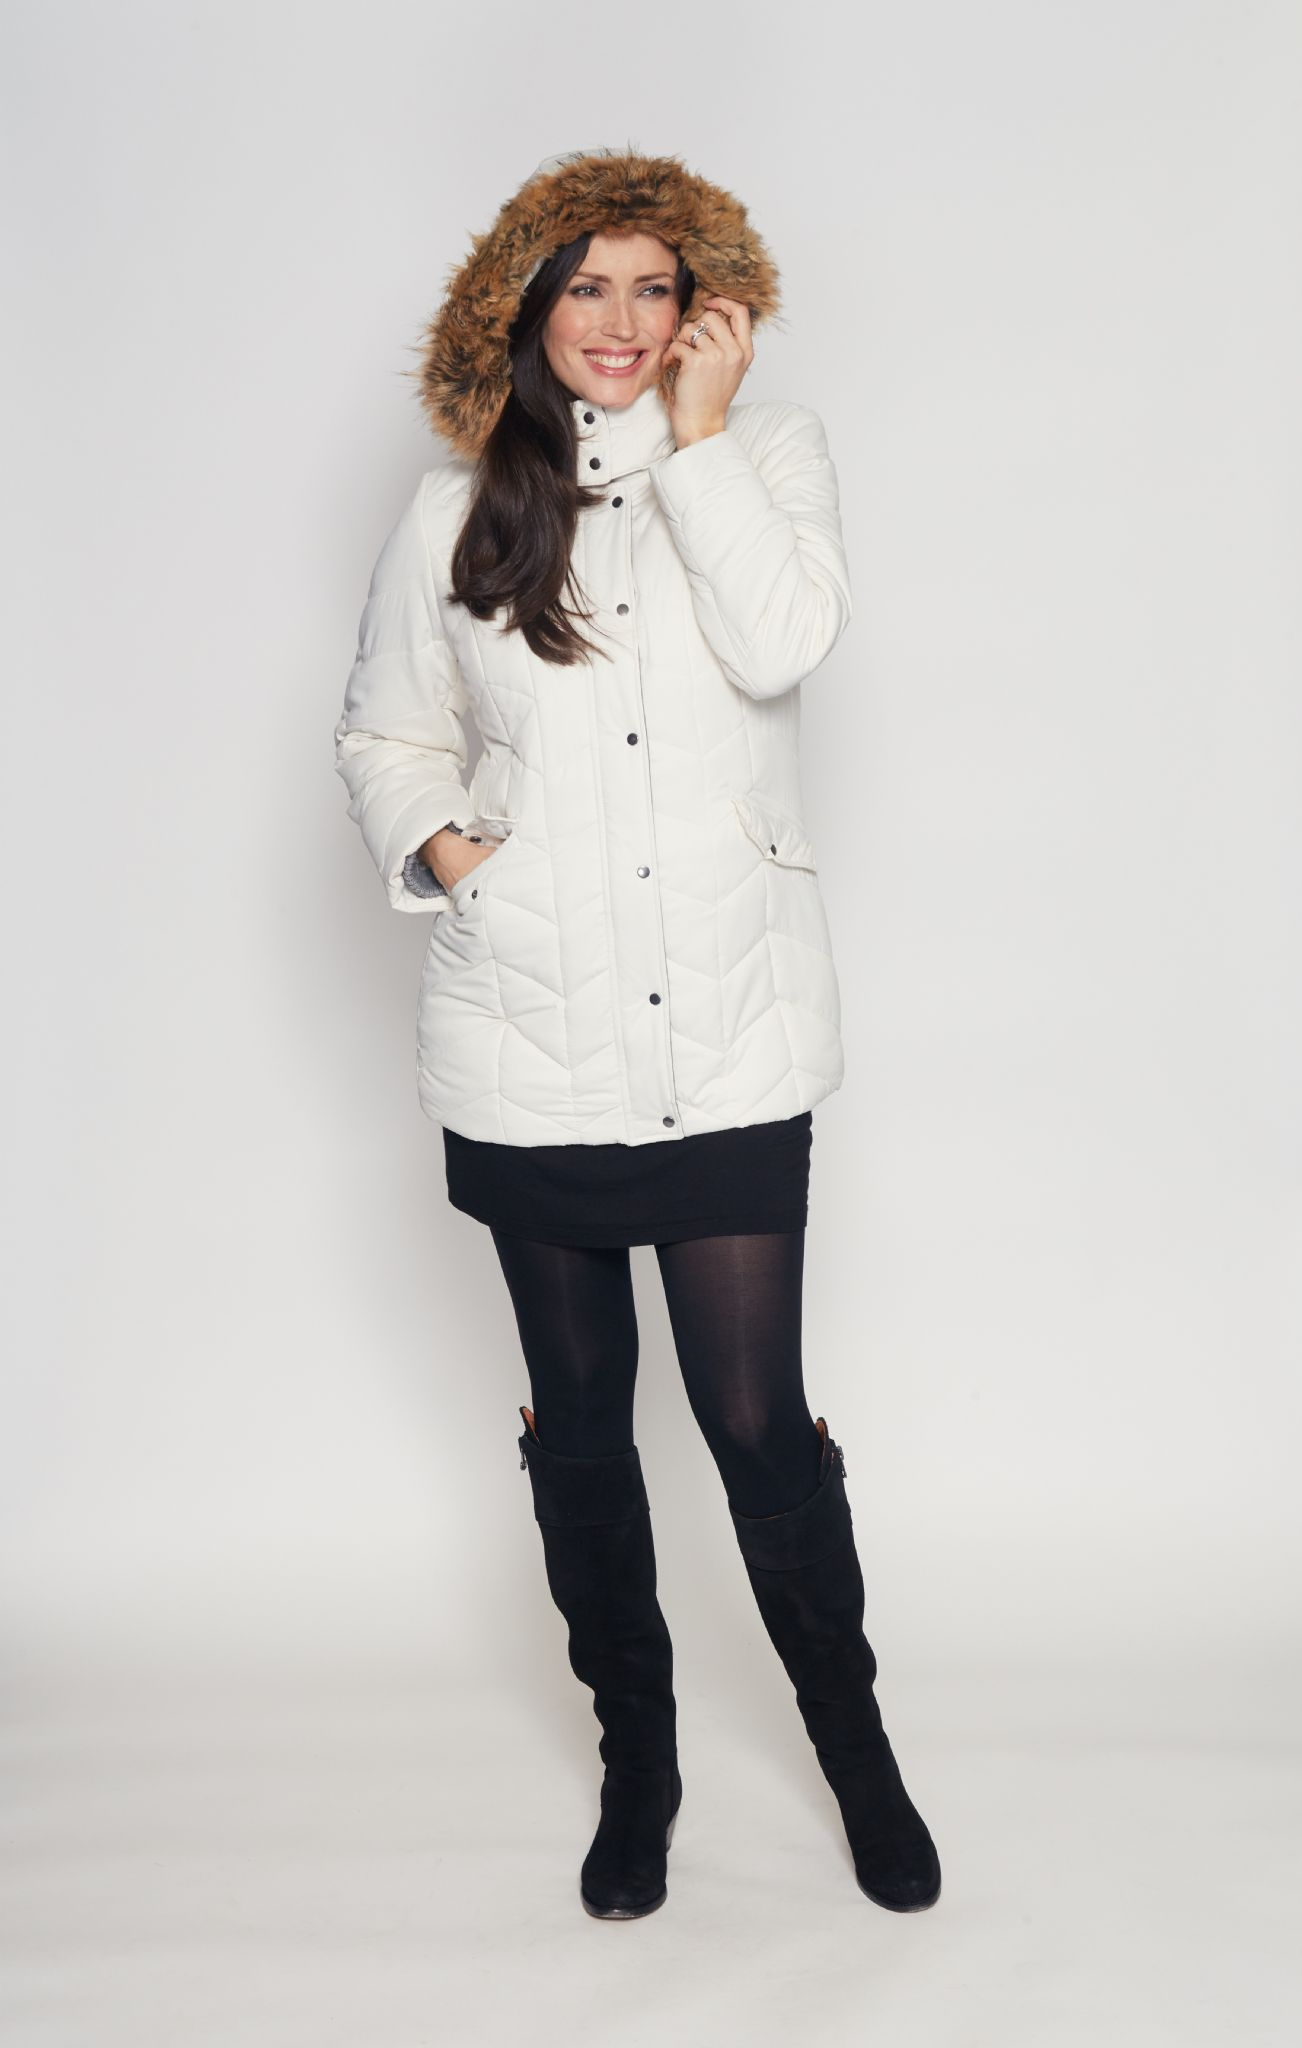 All types of plus size winter jacket & coat in newchic. Plus size puffer coats for women, long trench coat, loose puffer coat for maternity, with .